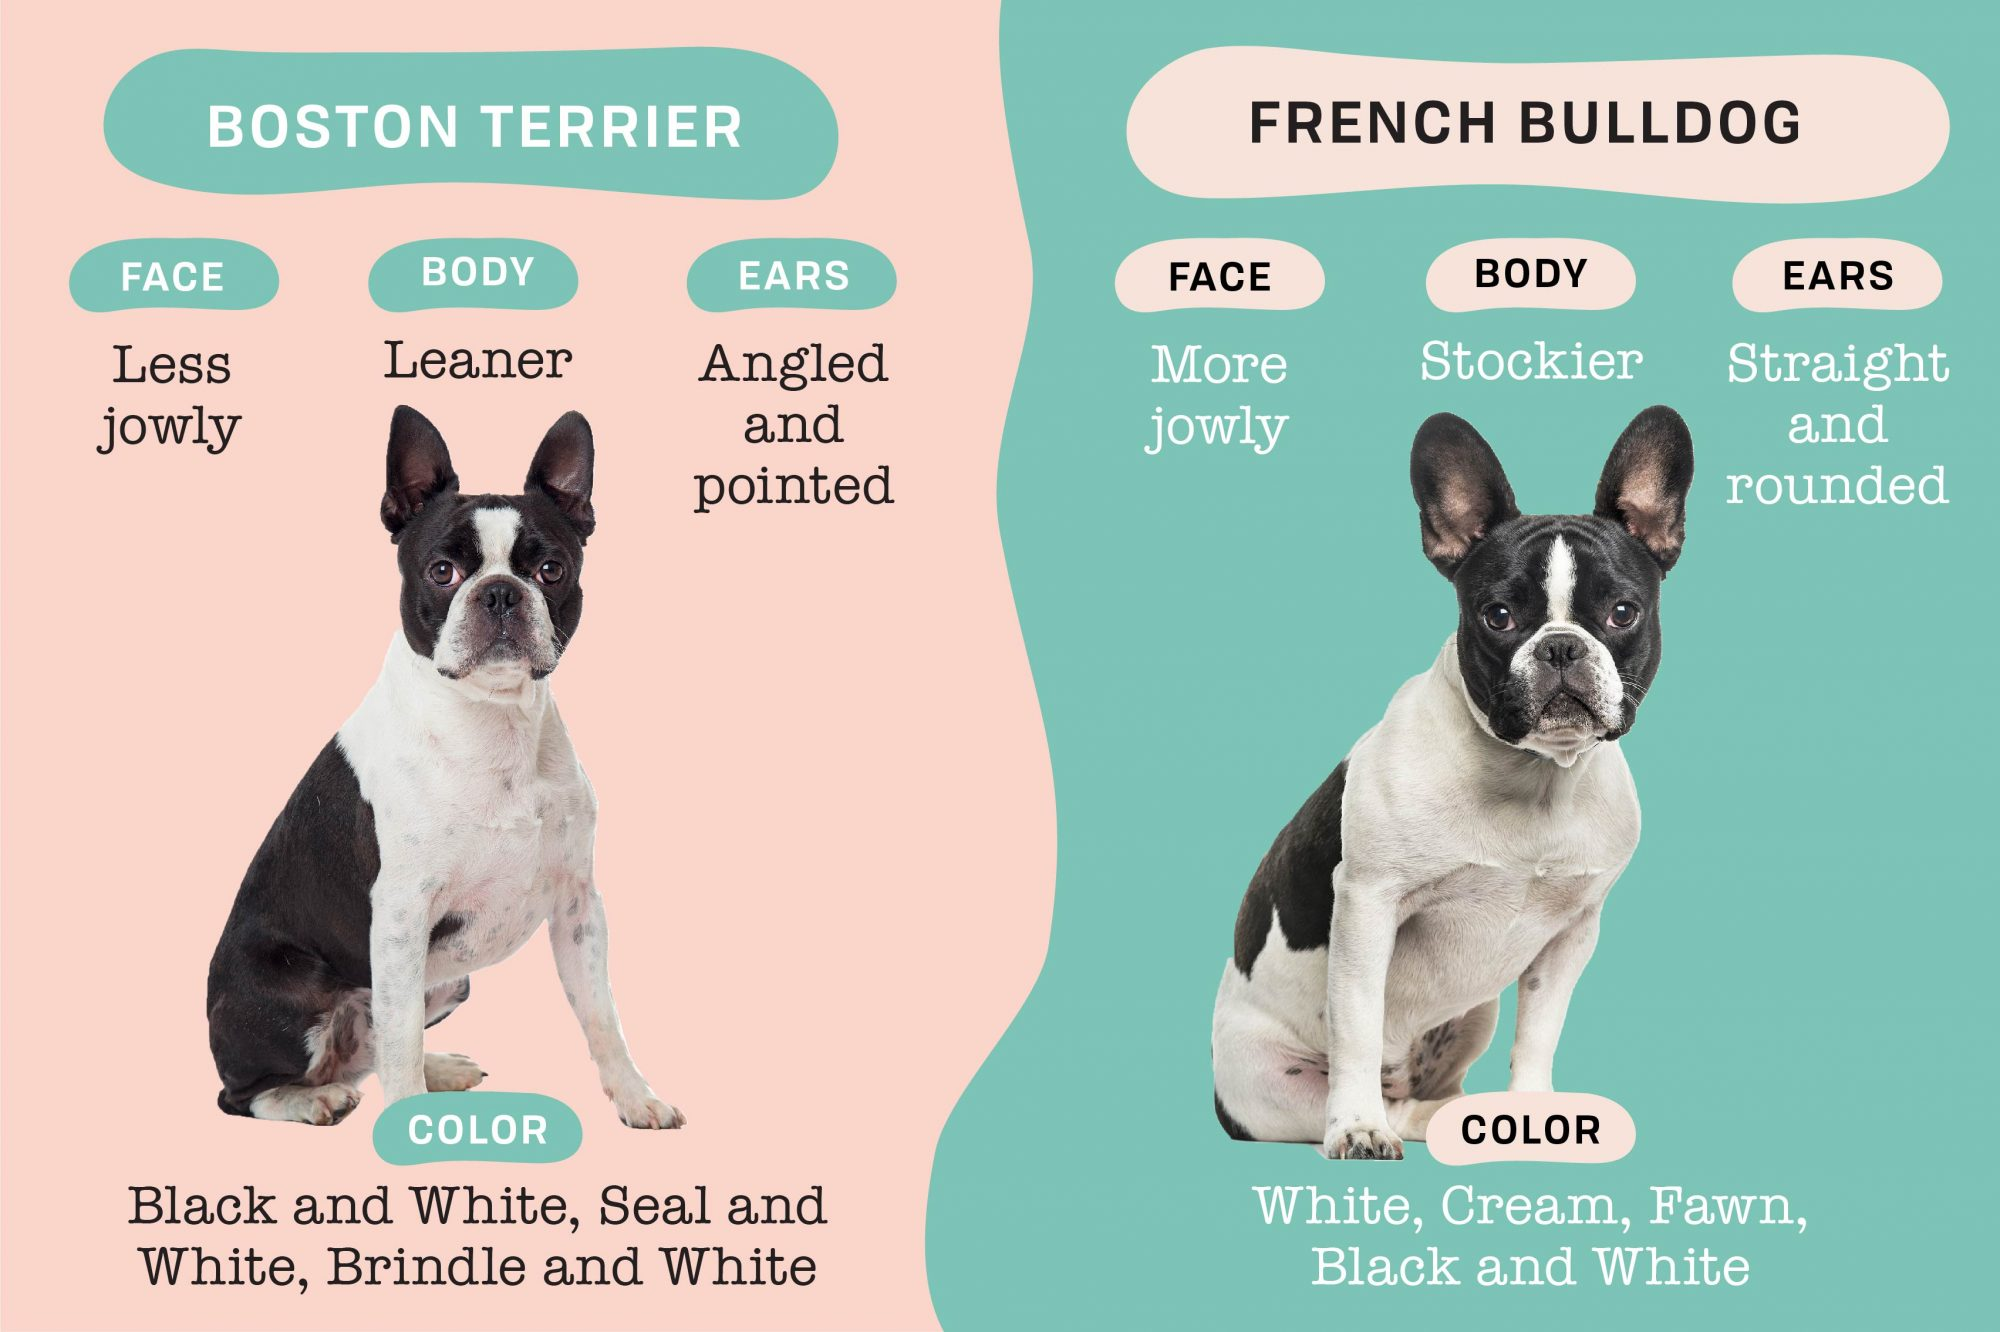 boston terrier vs french bulldog physical differences